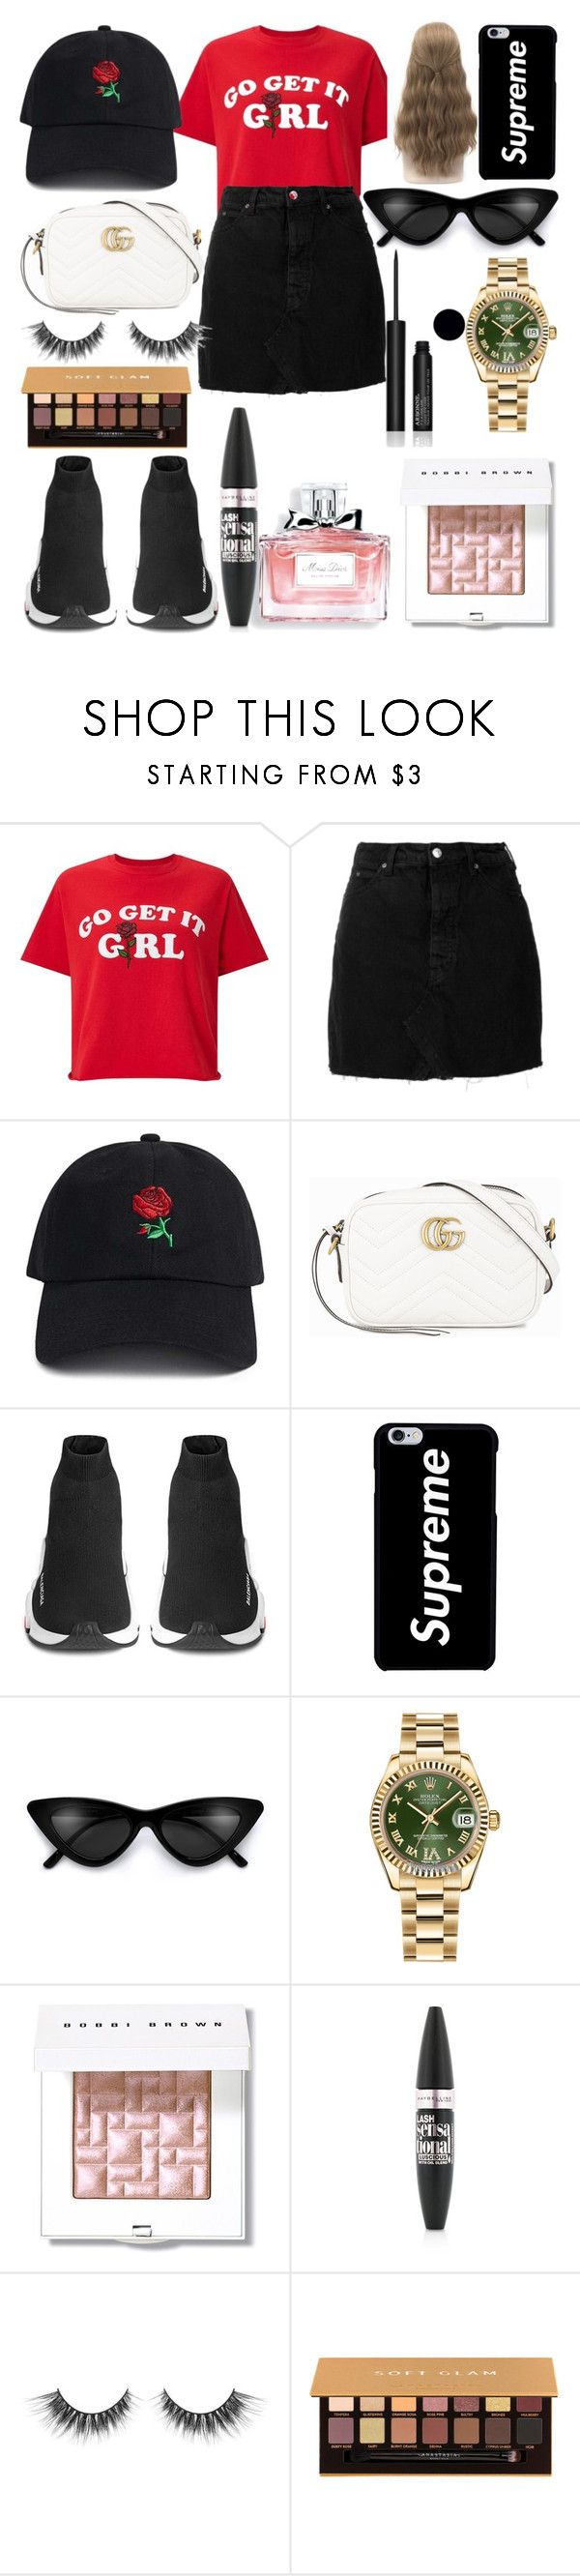 """""""Untitled #278"""" by anguema03 ❤ liked on Polyvore featuring Miss Selfridge, IRO, 21 Men, Gucci, Balenciaga, Rolex, Christian Dior, Bobbi Brown Cosmetics, Maybelline and Anastasia Beverly Hills"""